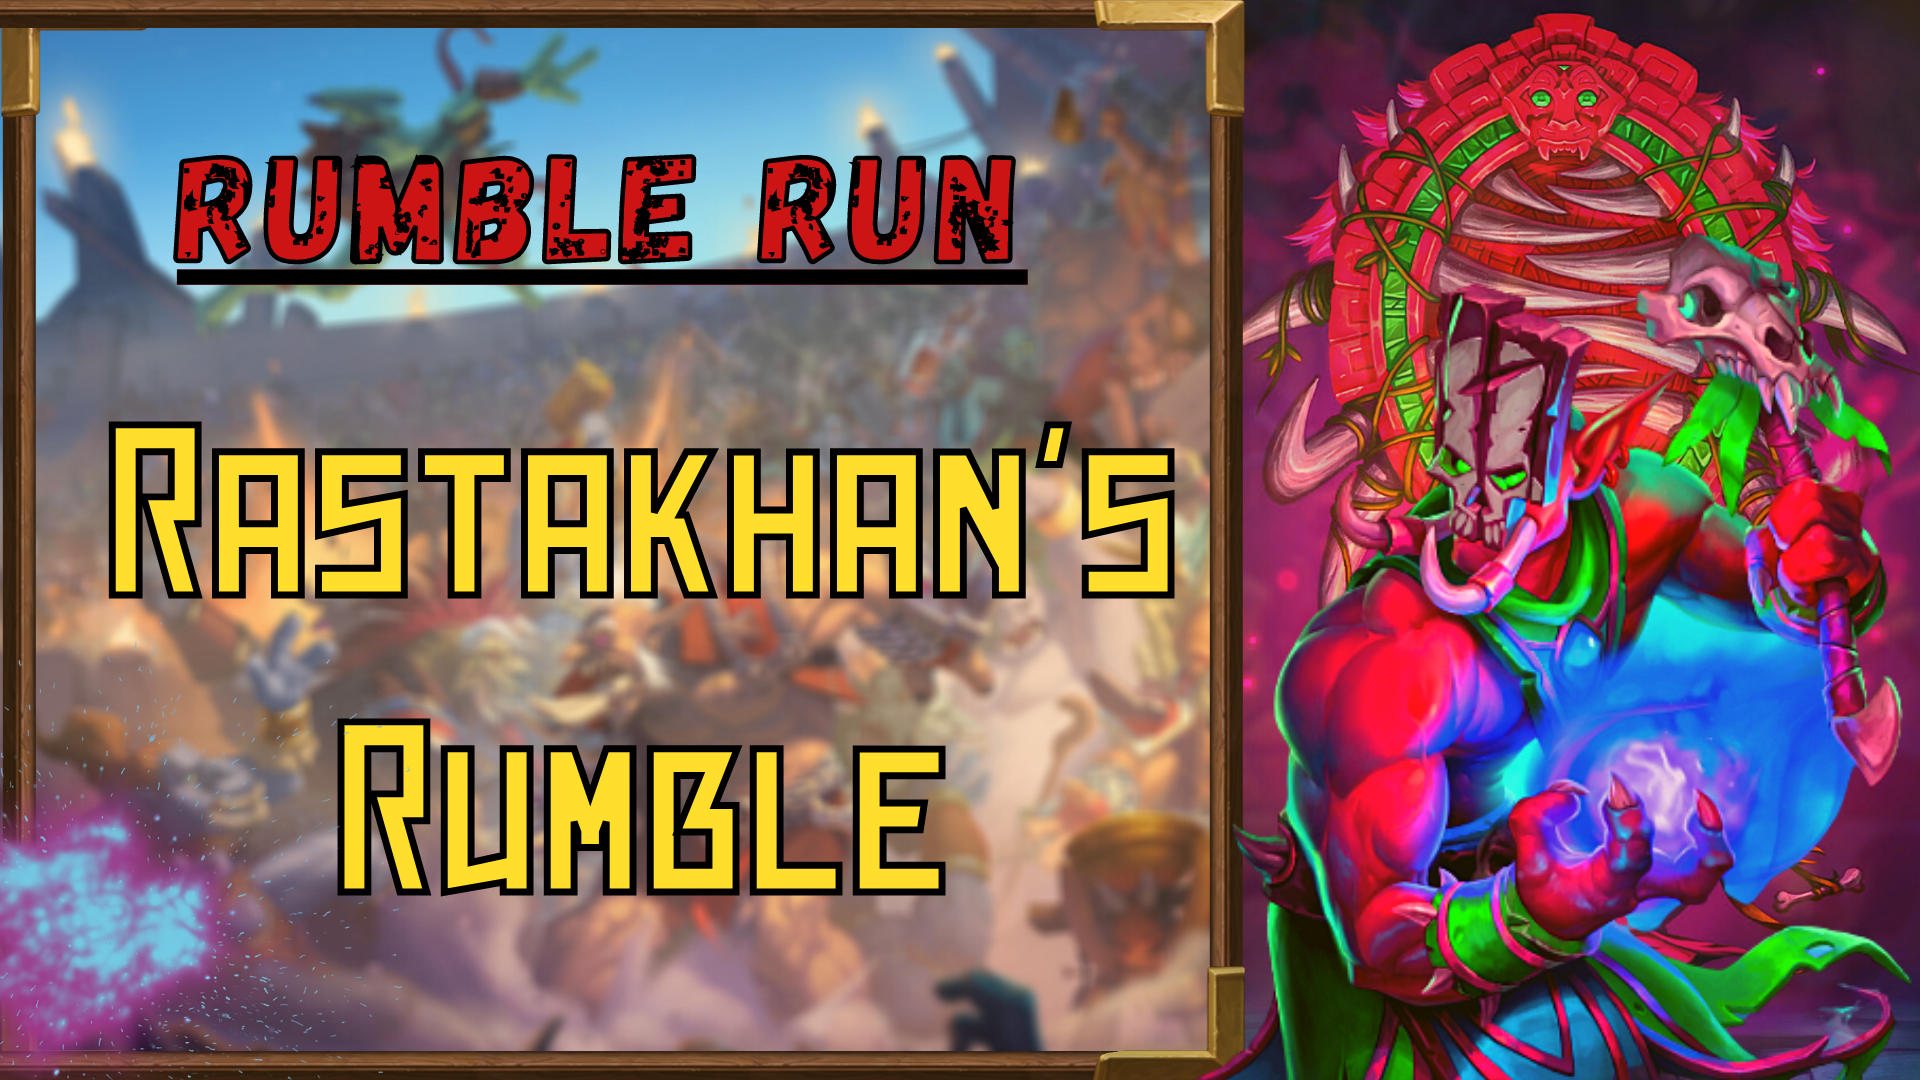 Rumble run: Rastakhan's Rumble Zafari - e2p.com